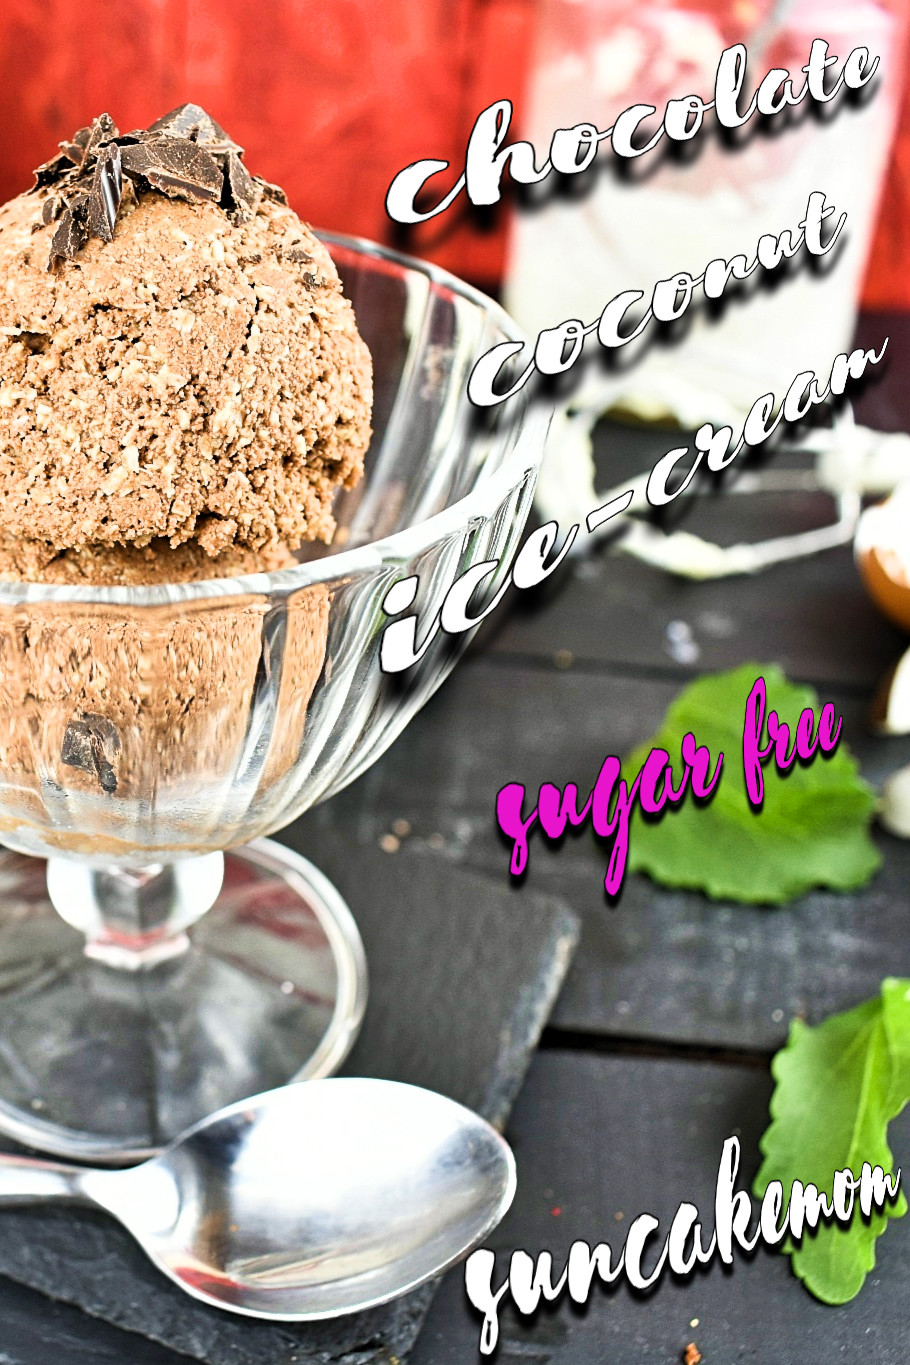 Chocolate-coconut-ice-cream-Pinterest-SunCakeMom